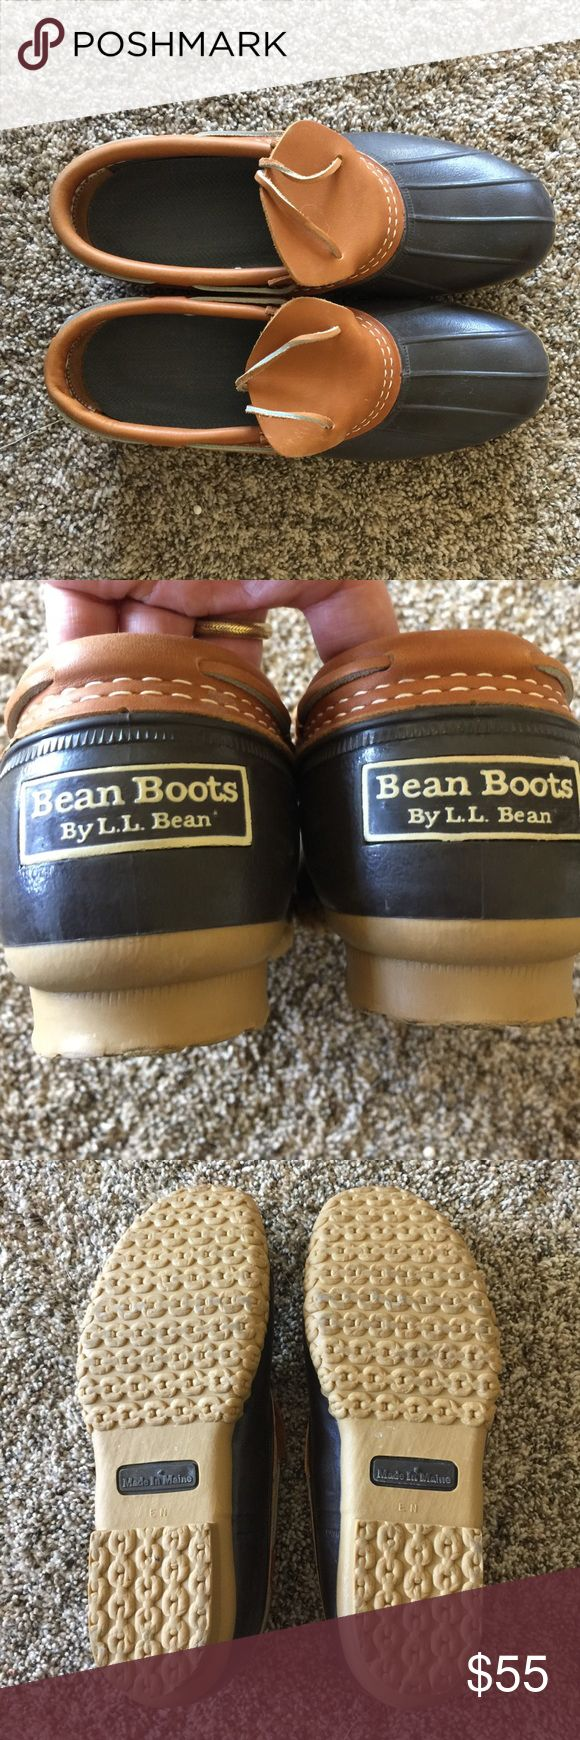 LL Bean boots - short 🌱☔️ fit like size 10 Re-posh! ✨ Like new ✨ wish these fit but they are too big for me.  LL Bean boots - short and perfect for the spring rain or garden 🌱☔️ They are marked 9 but fit more like a 10.  I would be open for trading for a size 8 too. L.L. Bean Shoes Winter & Rain Boots